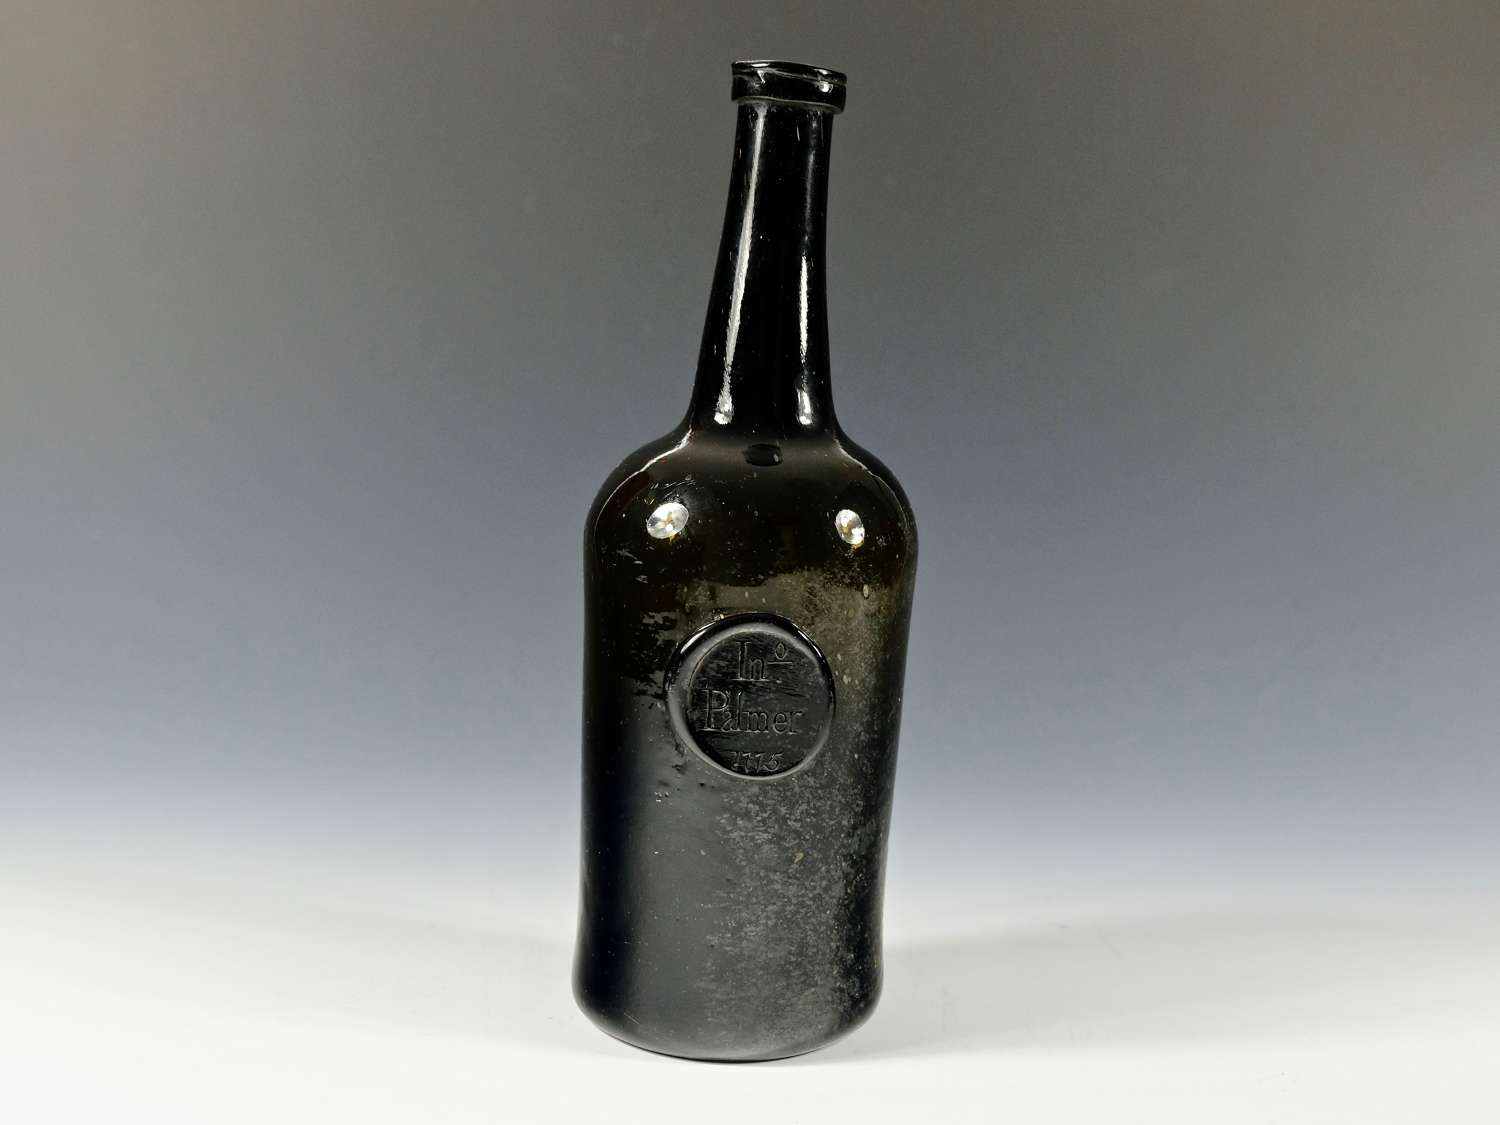 Sealed cylindrical wine bottle dated 1775